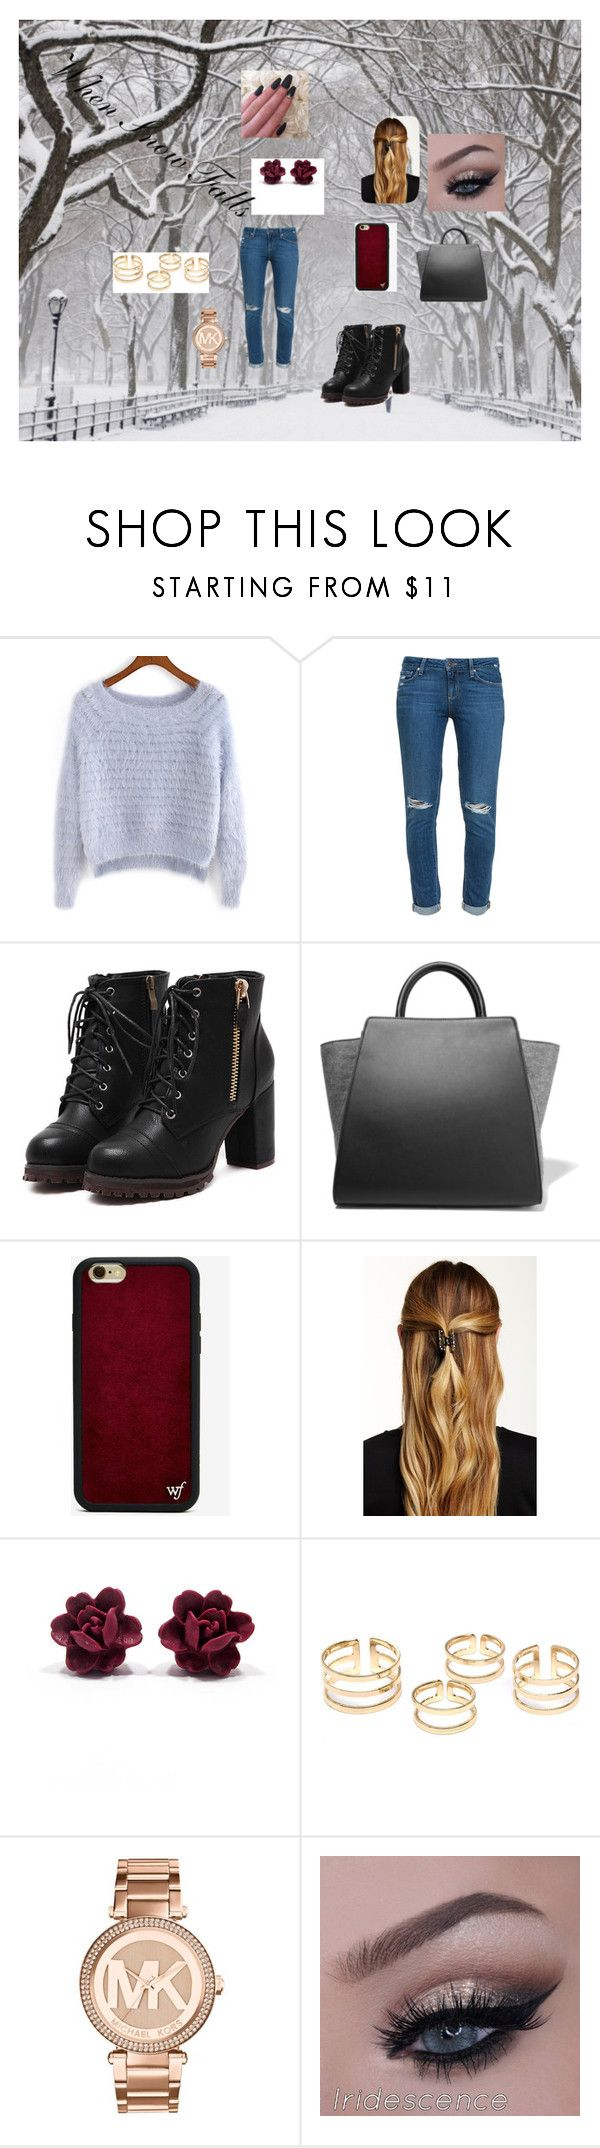 """Untitled #101"" by rosesanders on Polyvore featuring Paige Denim, ZAC Zac Posen, Wildflower, Natasha Accessories and Michael Kors"